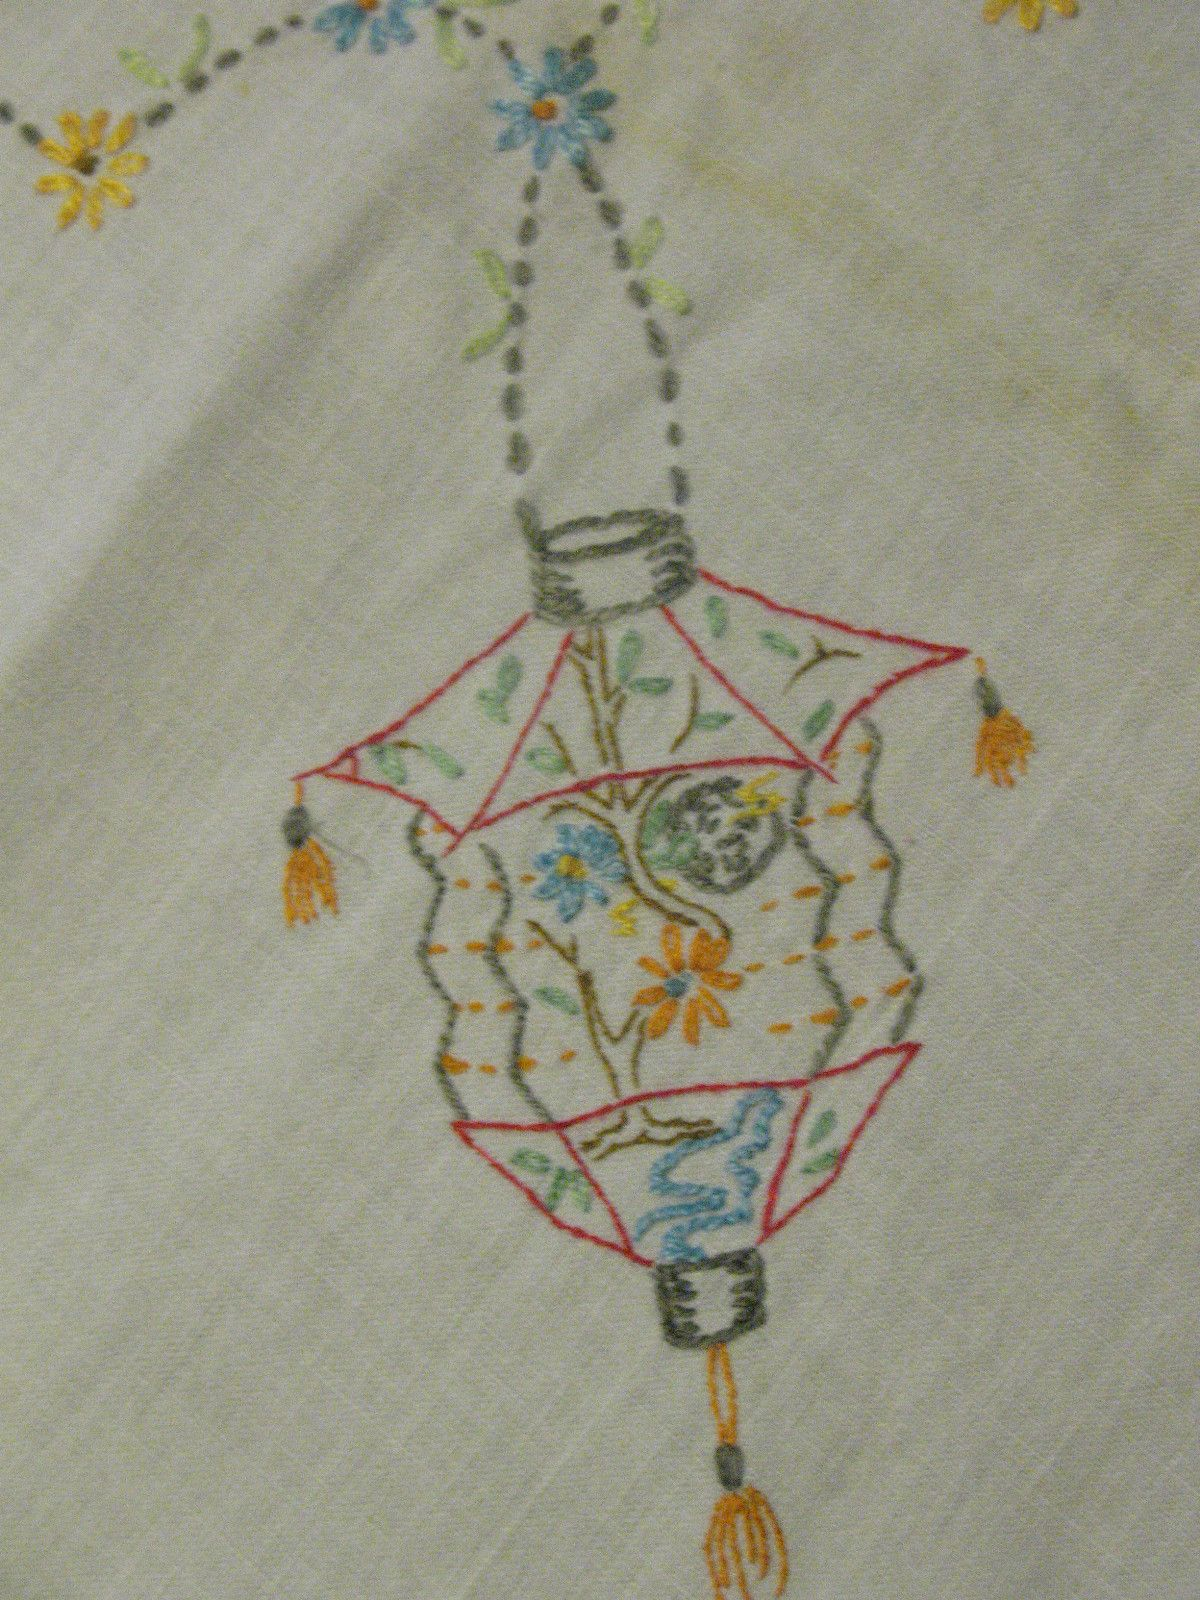 Vintage Embroidered Cotton Tablecloth Card Tablecloth Chinese Lantern Chinese Lanterns Textiles Artwork Cotton Tablecloths